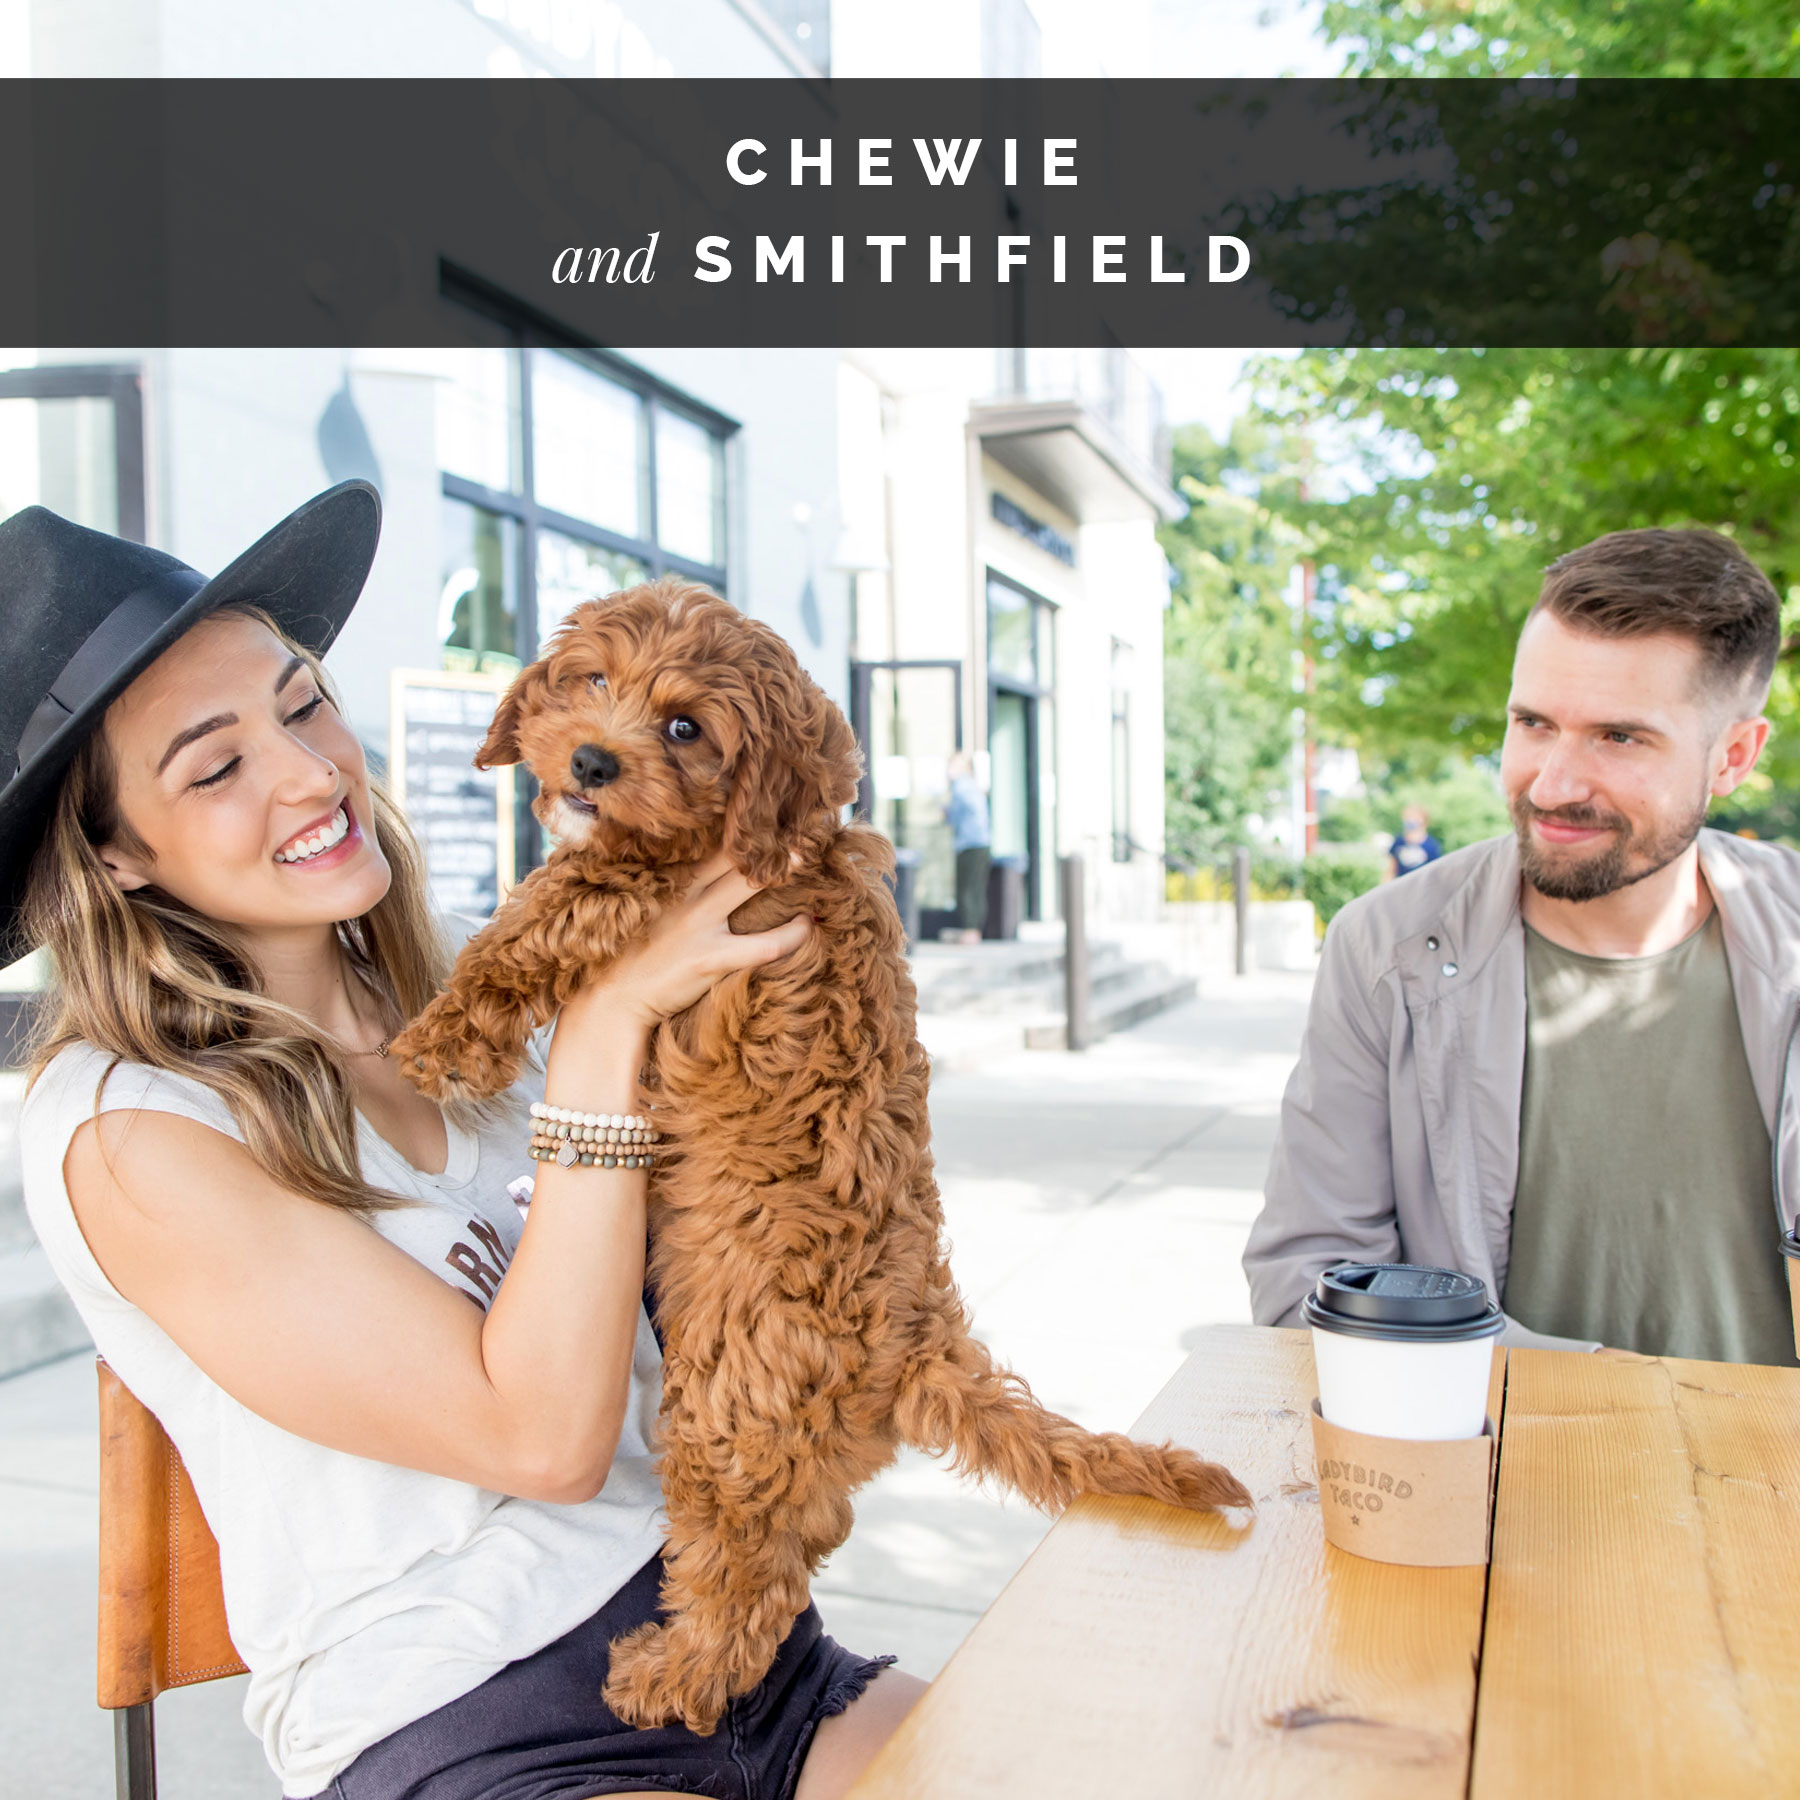 Smithfield and their dog, Chewie | Celebrity Dogs and Their People by Sara Kauss